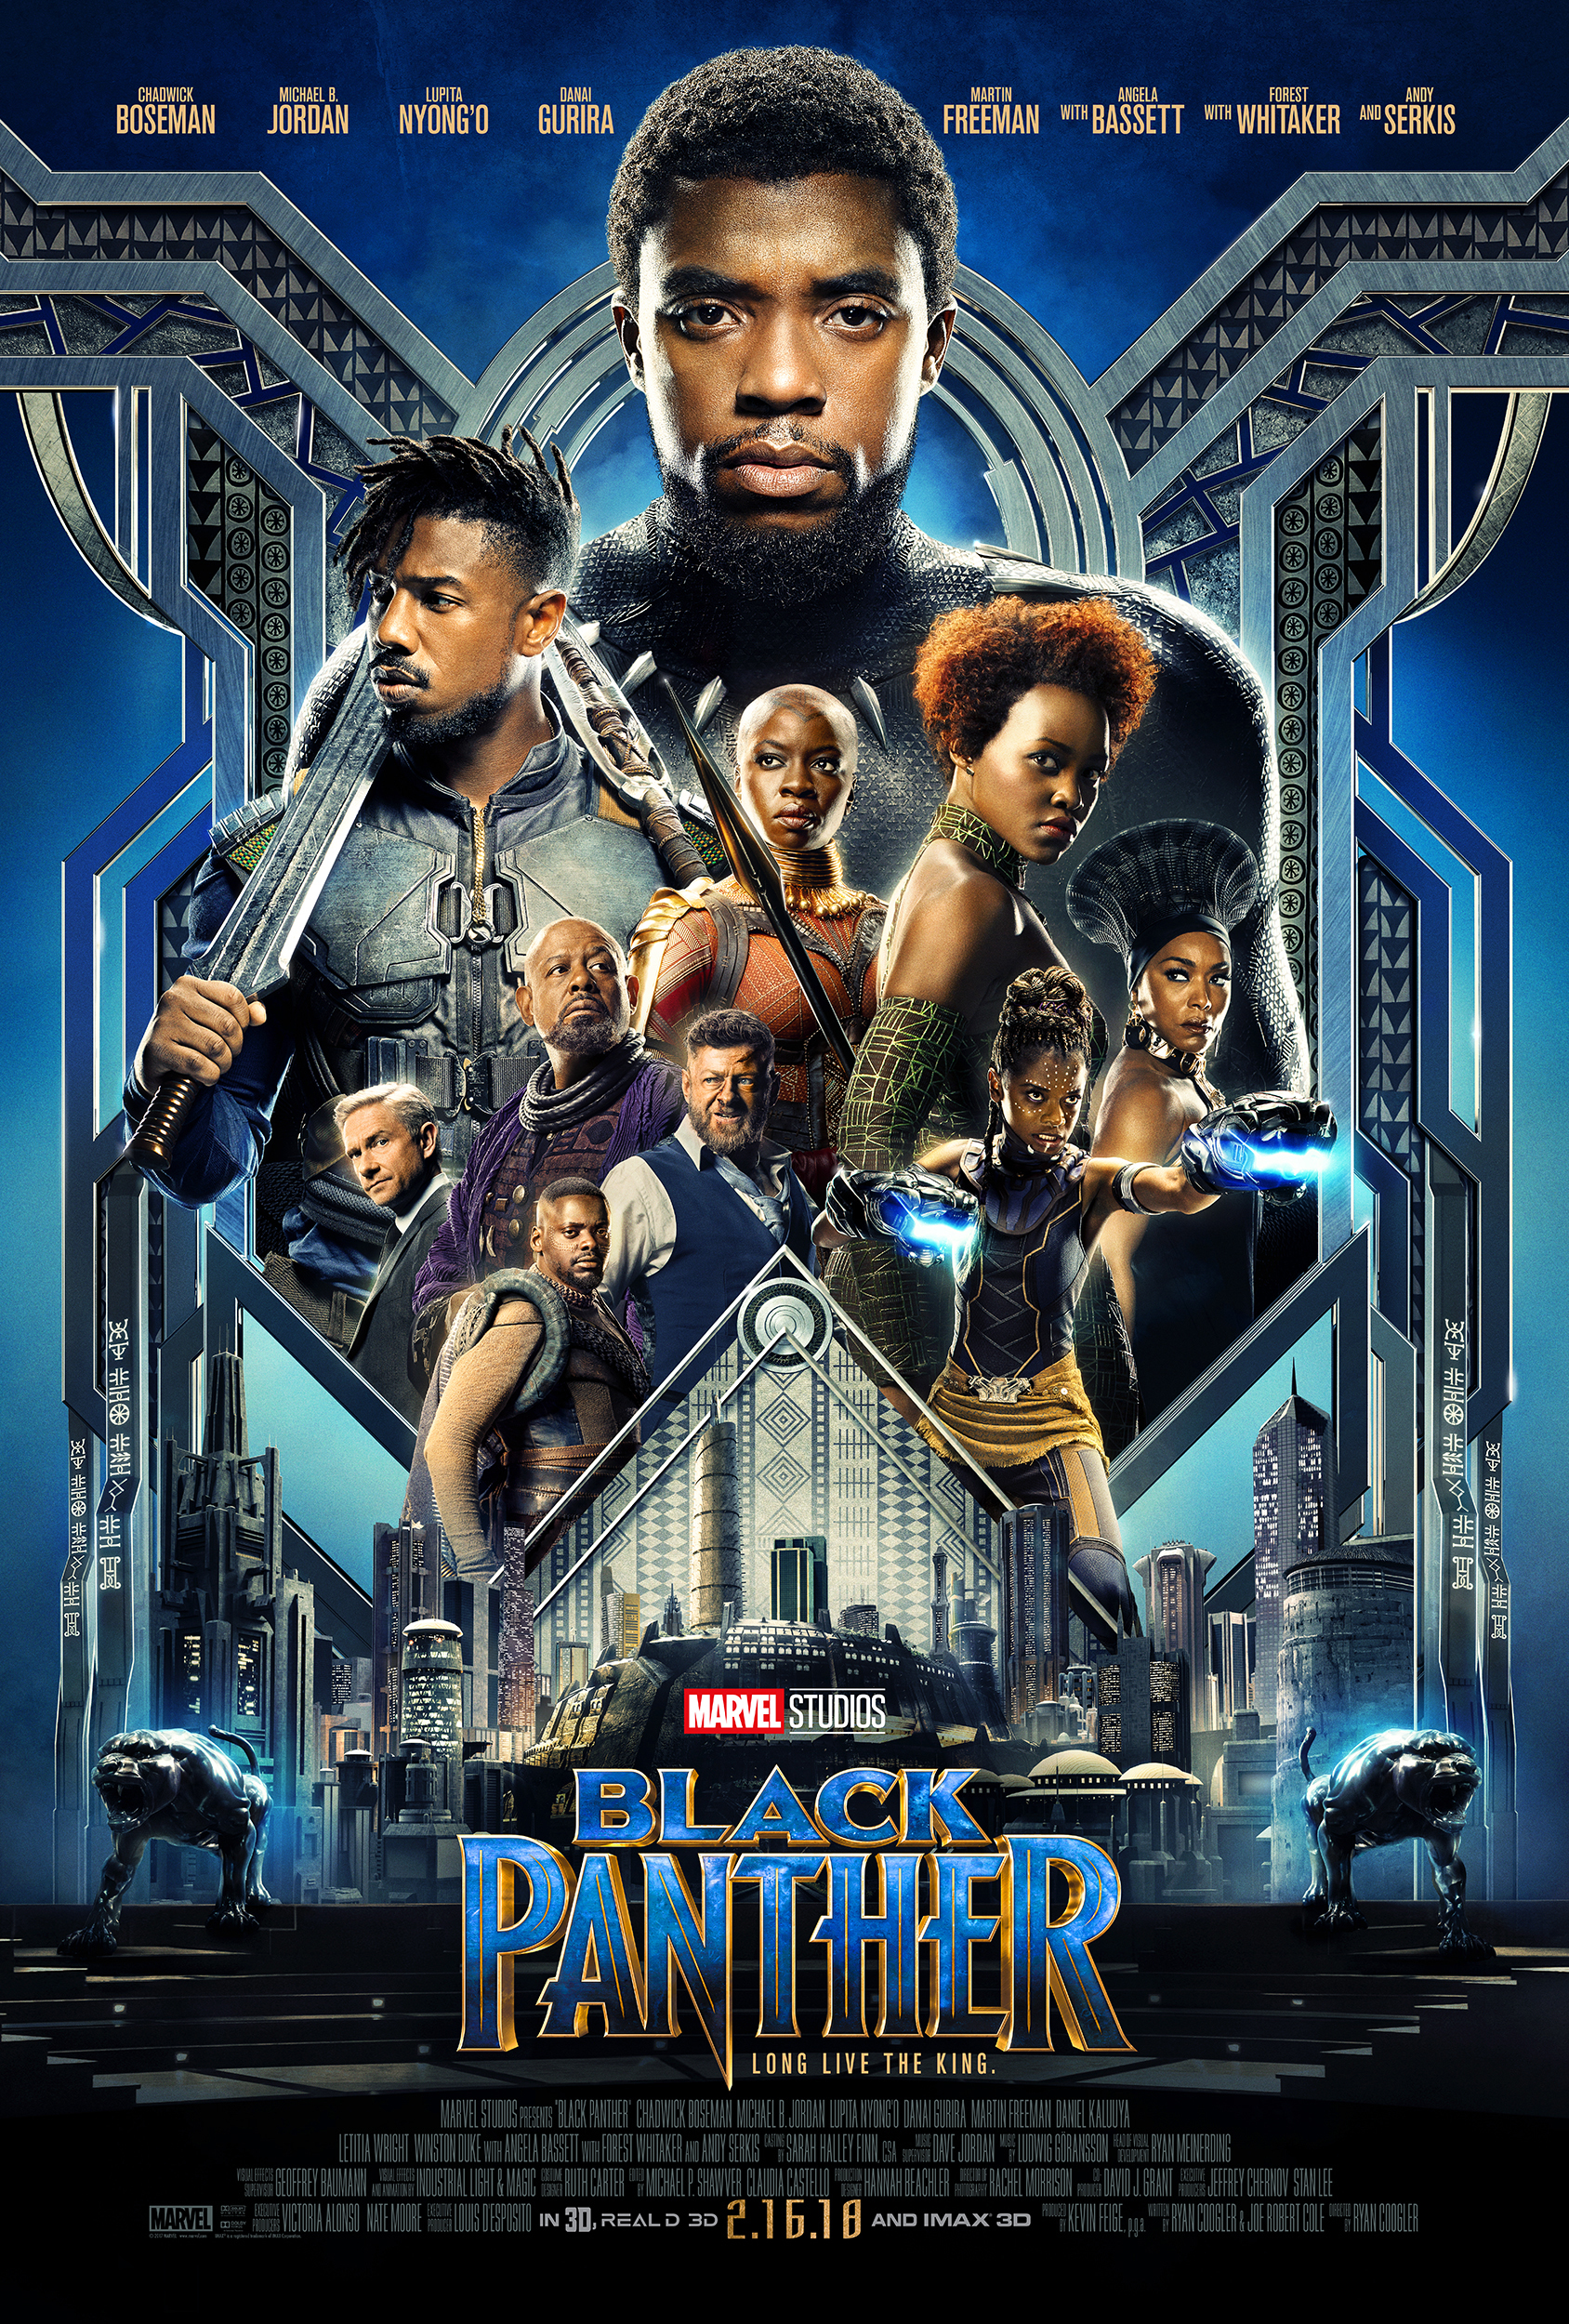 Black Panther Trailer and Poster released October 2017! New Marvel coming to the screen in February 2018